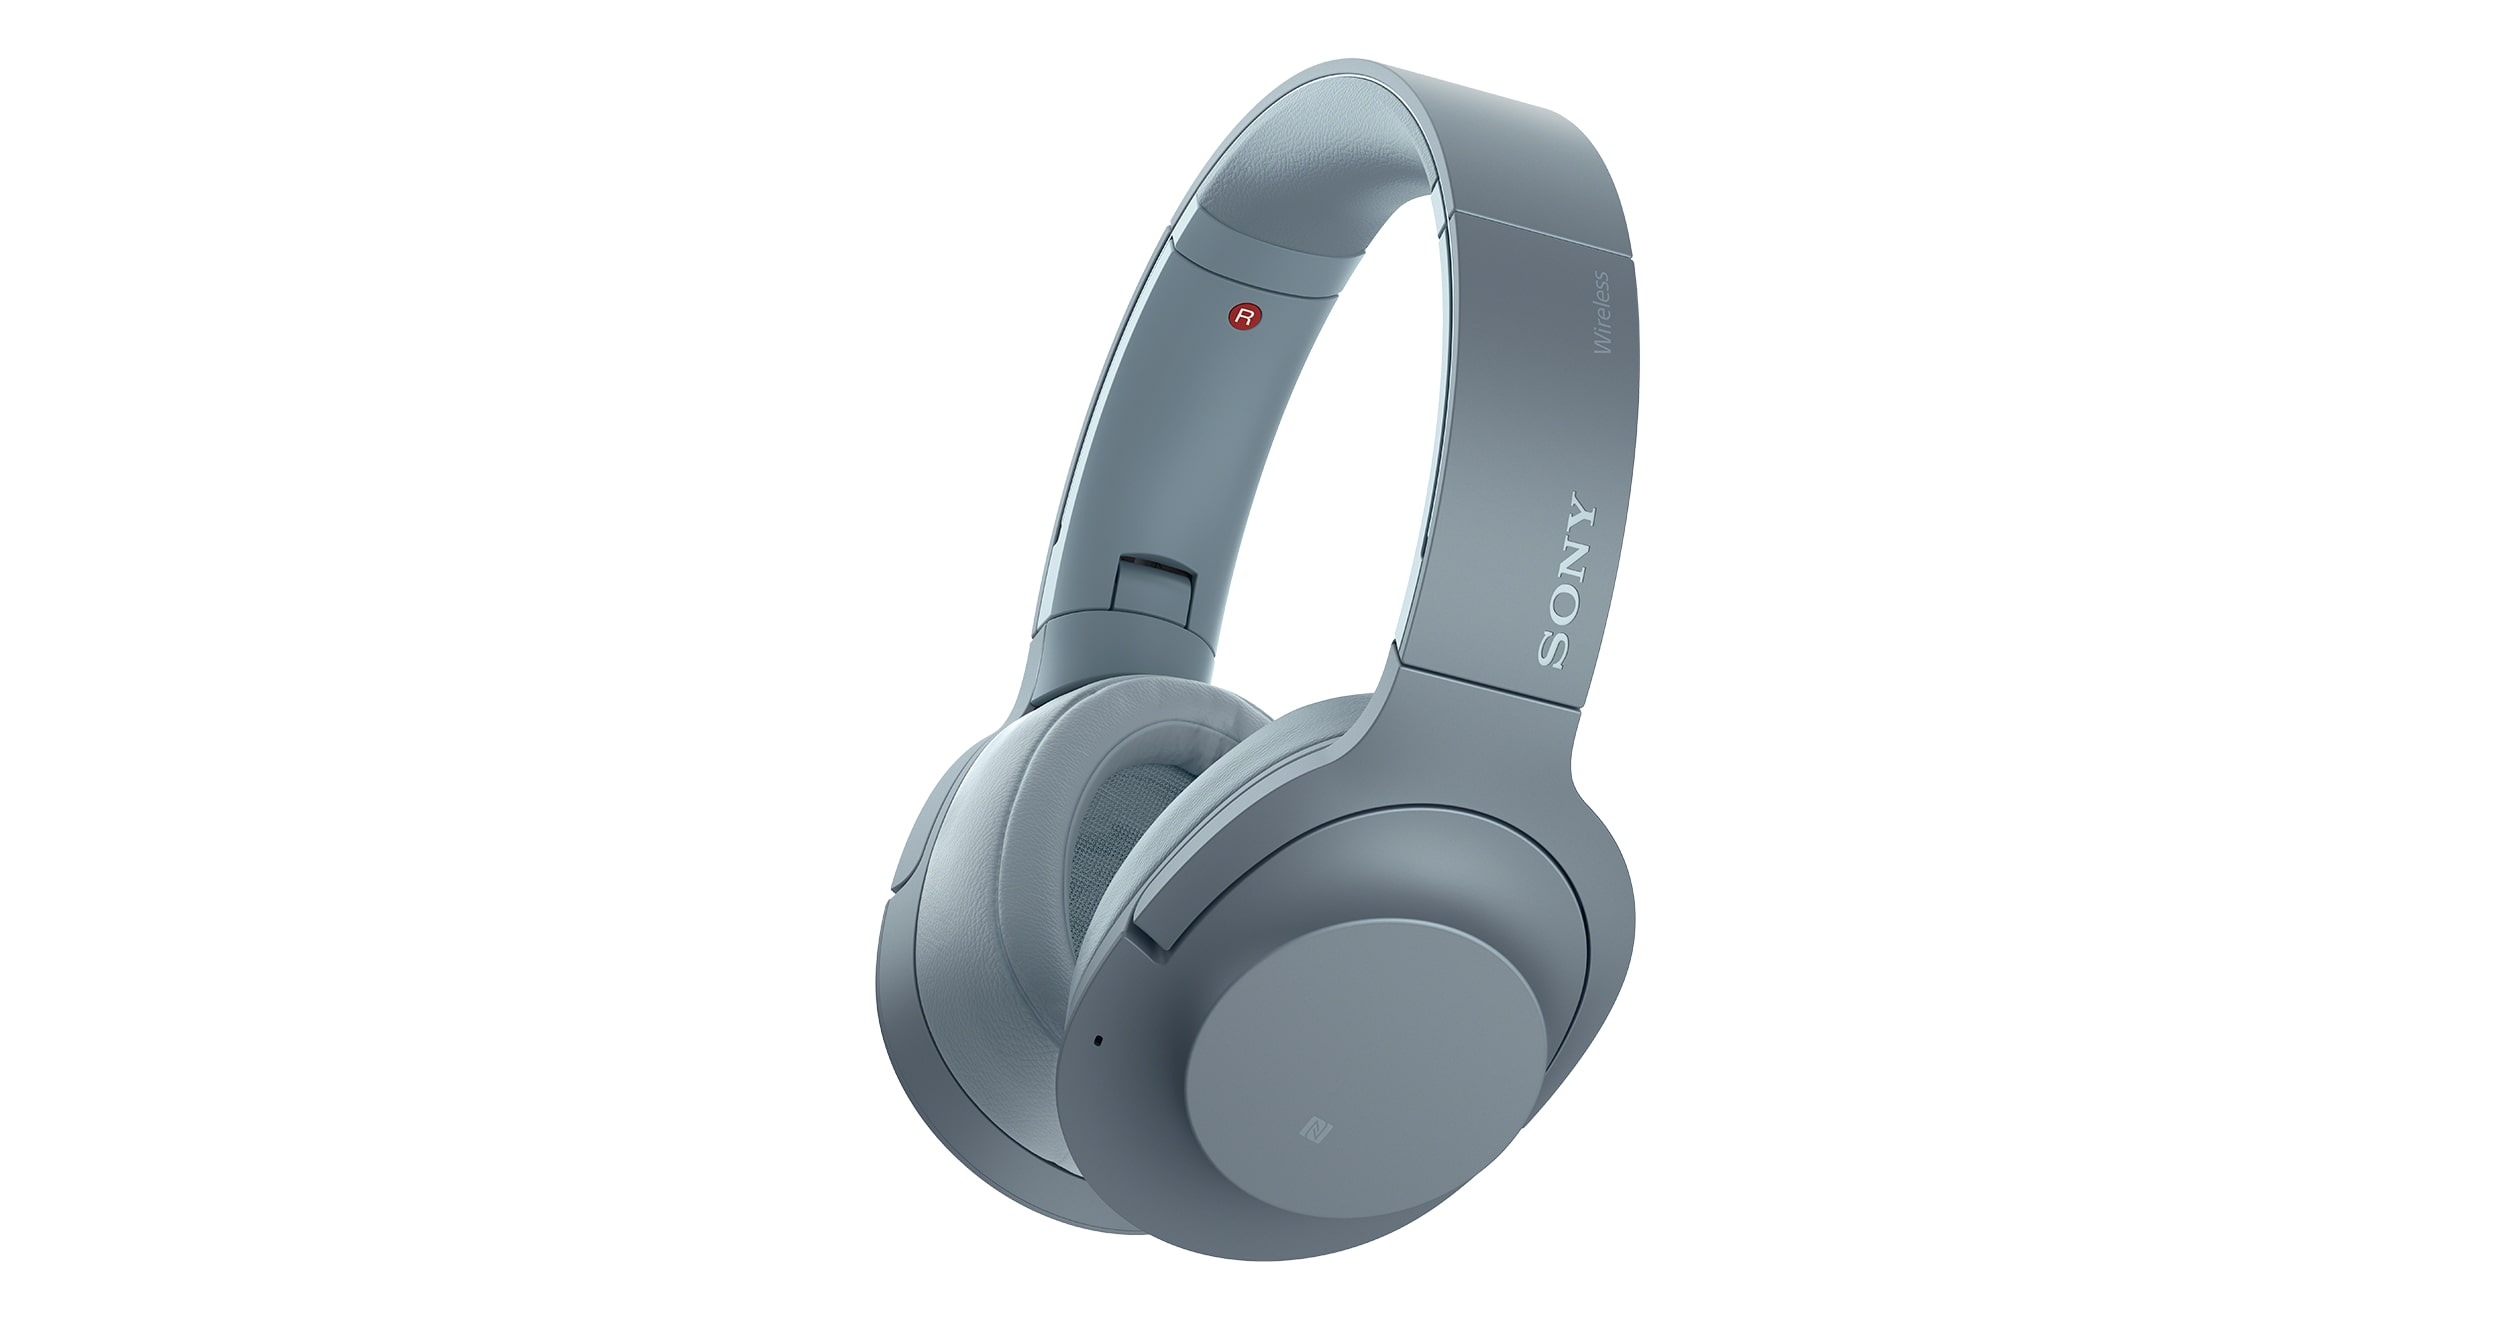 70eac8653b8 h.ear on 2 Wireless Noise Cancelling Headphone | WH-H900N | Sony ...